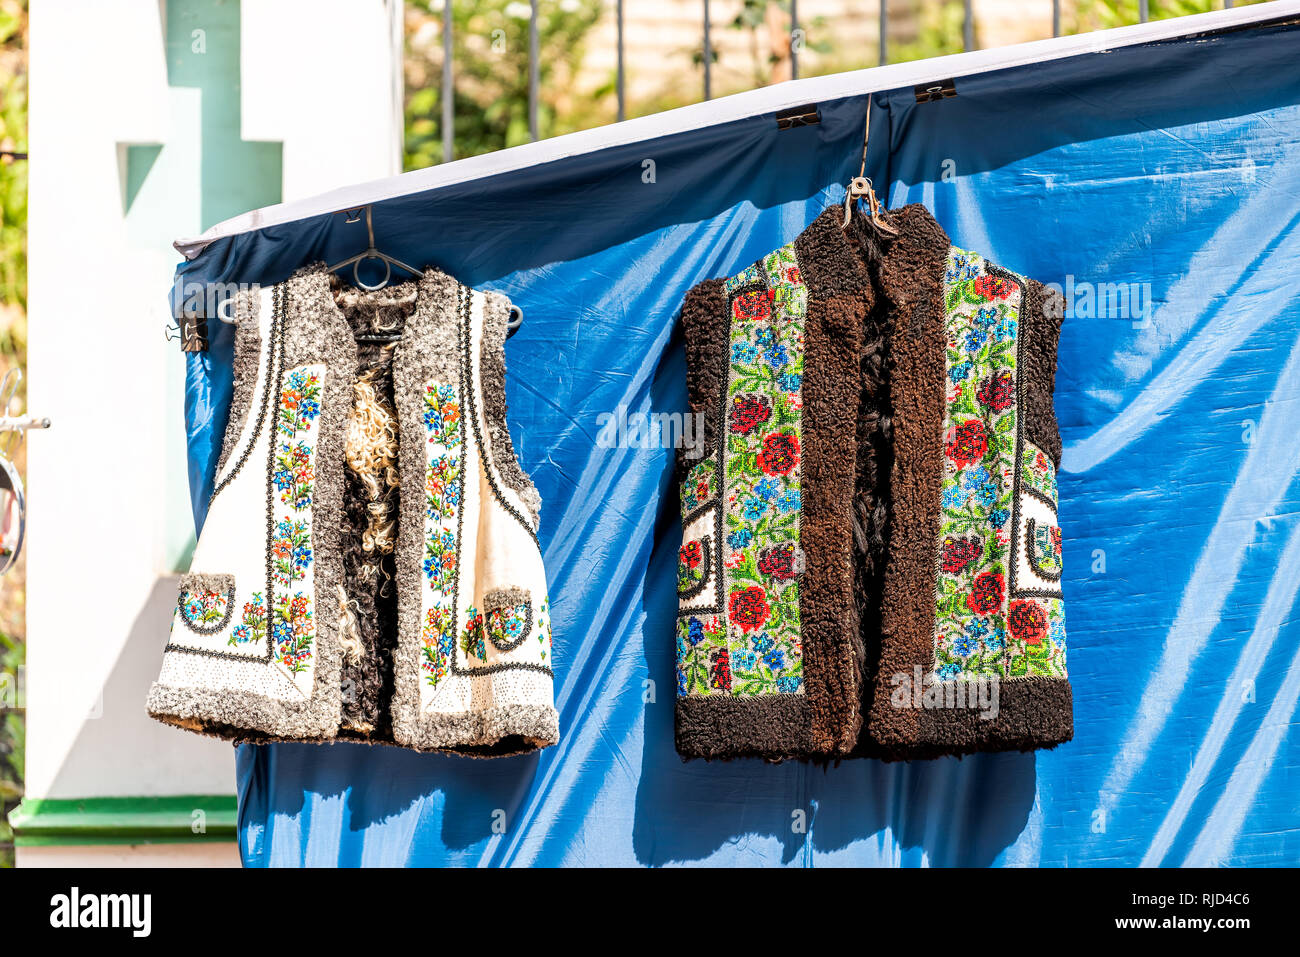 Kyiv, Ukraine Andriyivskyy Uzviz Descent with vendors selling souvenirs vest wool jacket traditional costume in market stall culture clothes on displa - Stock Image